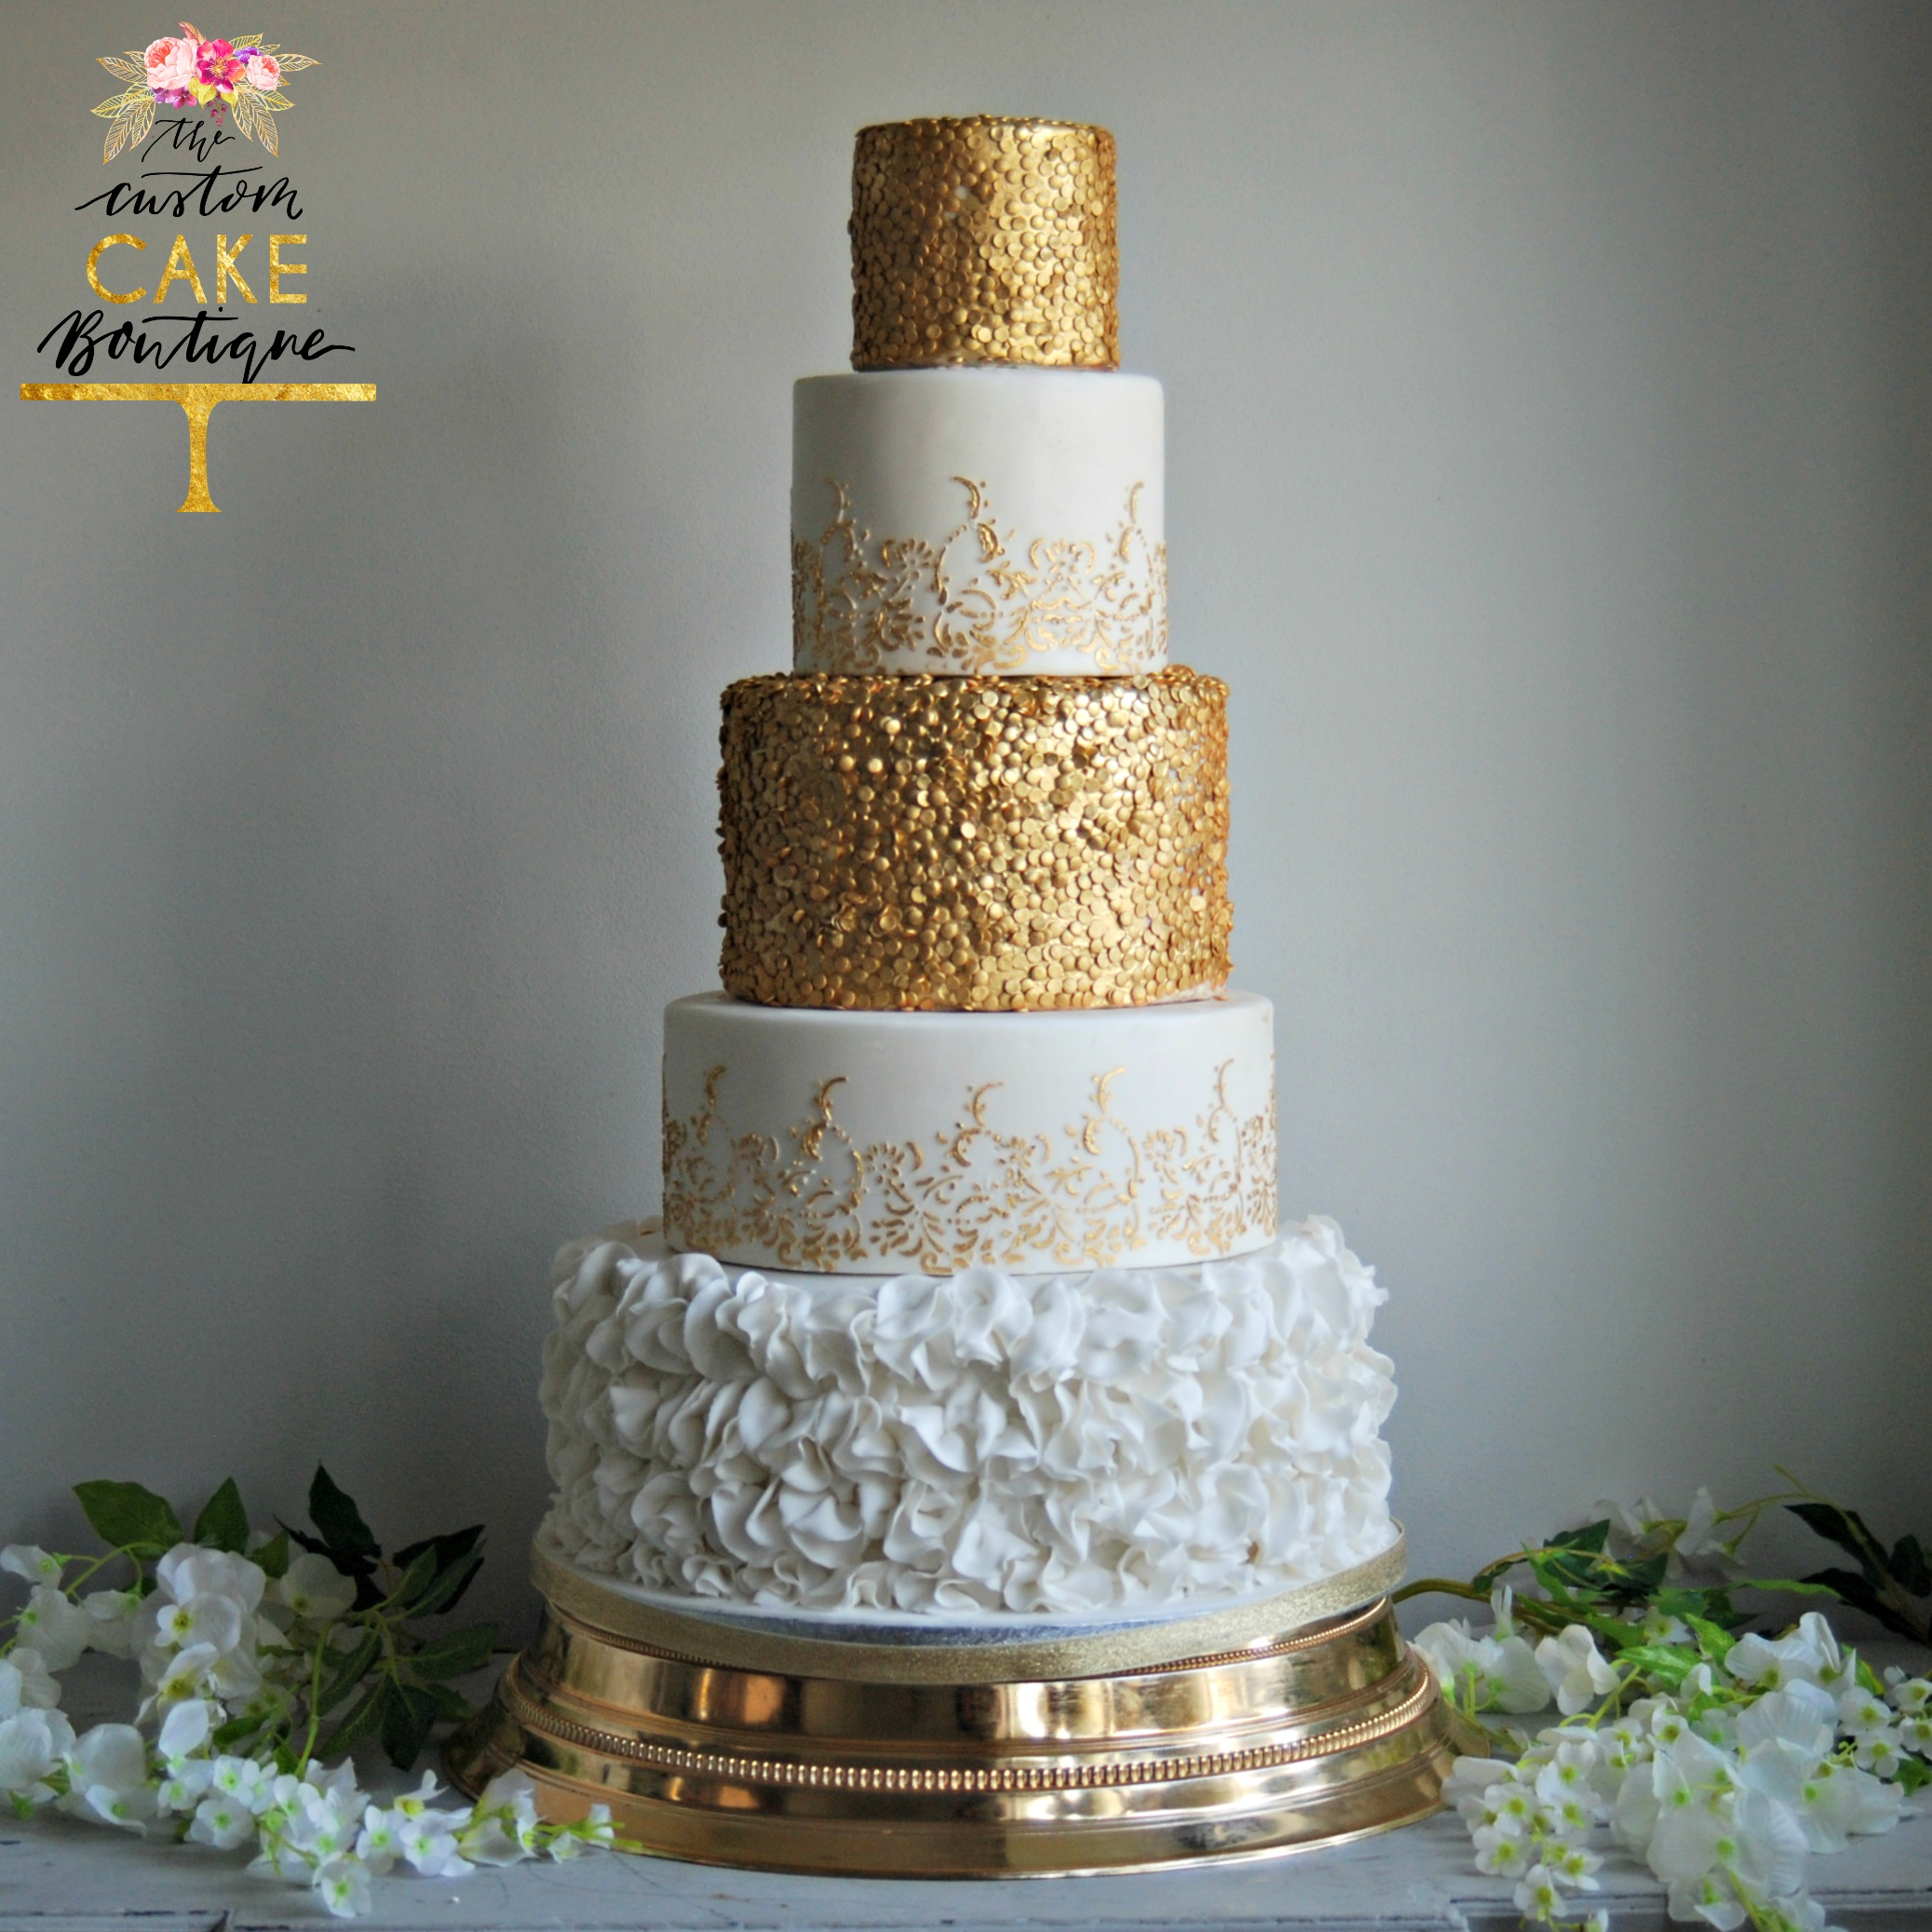 The Custom Cake Boutique | Wedding Cake Portfolio | London